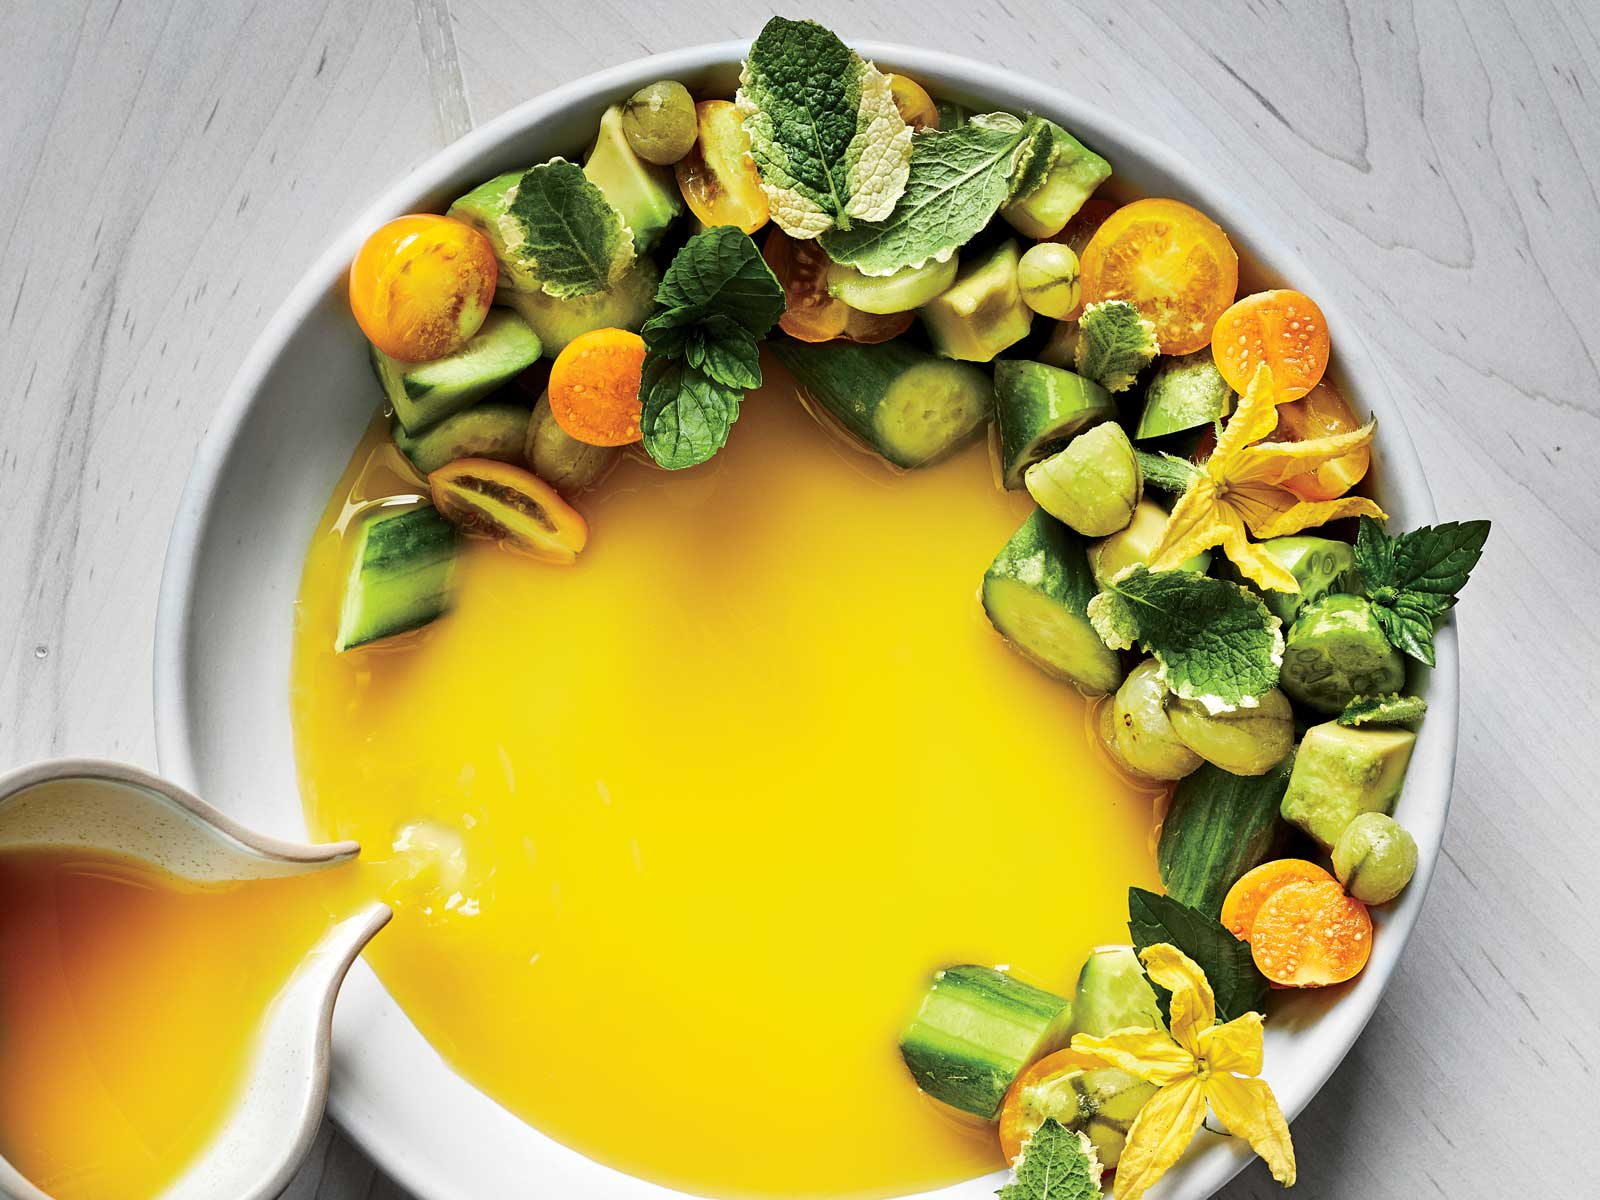 Cucumber-Avocado Salad with Gooseberry Piri Piri Soup